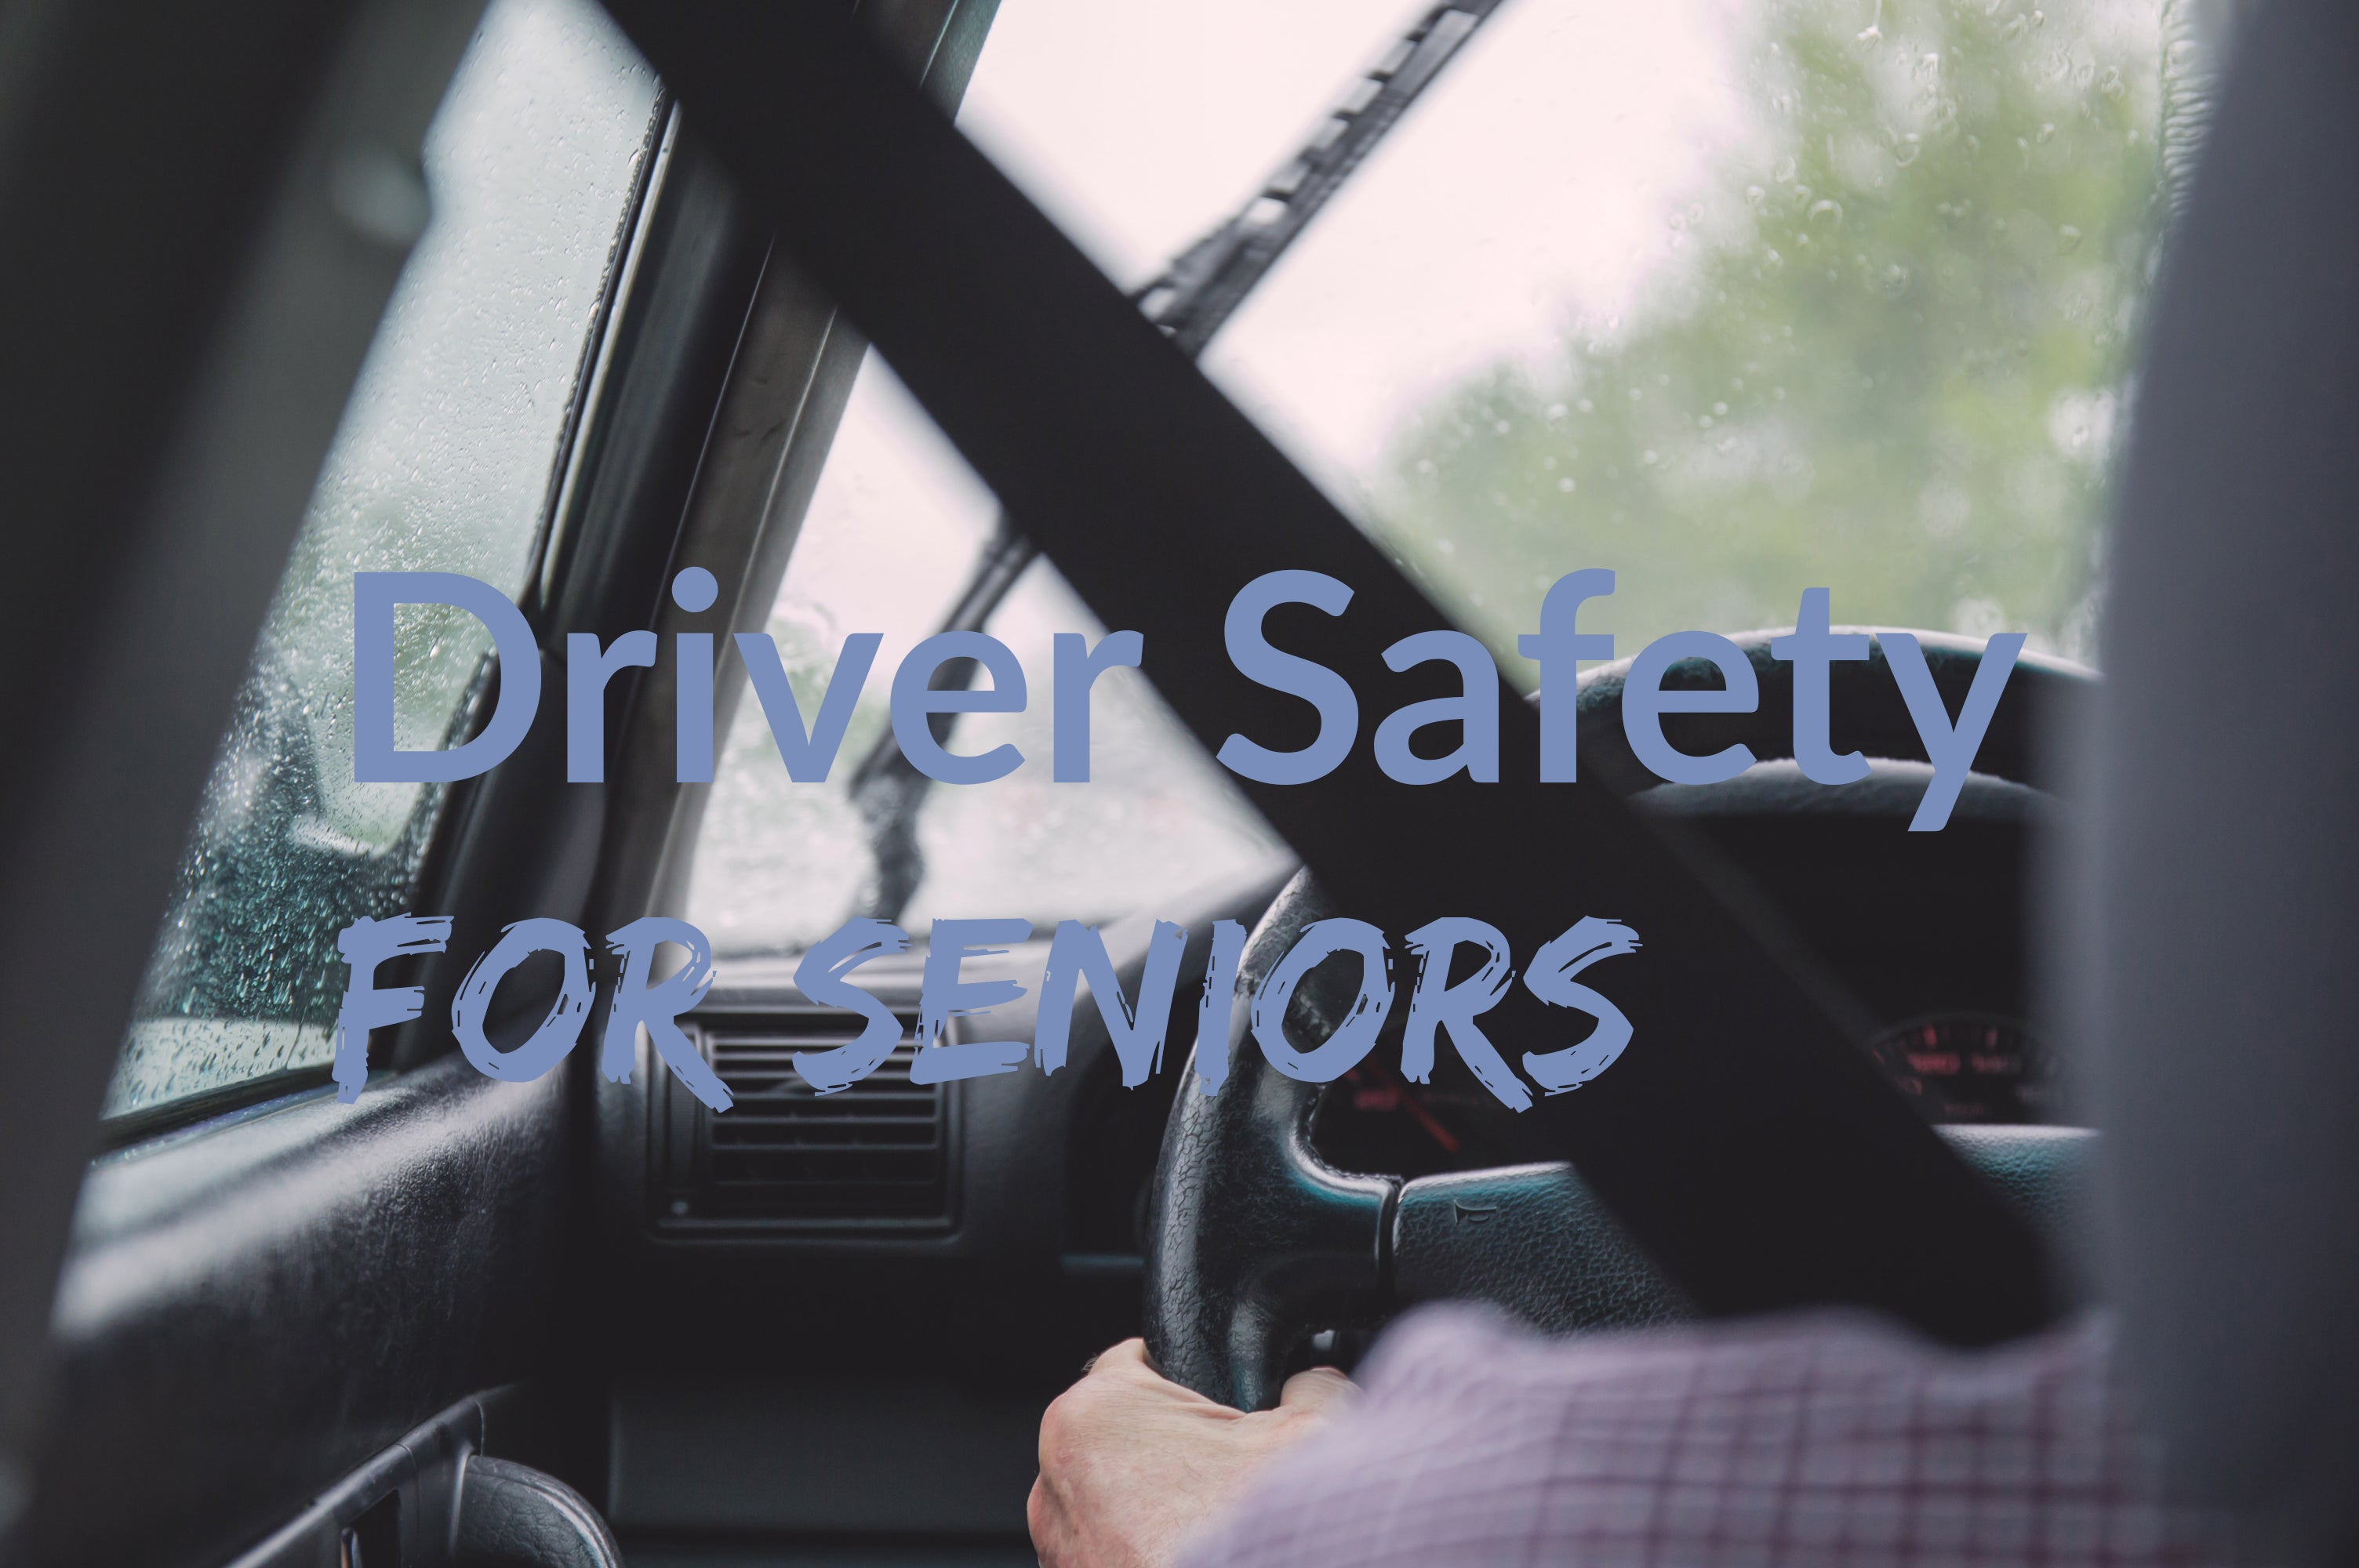 Driver Safety for Seniors